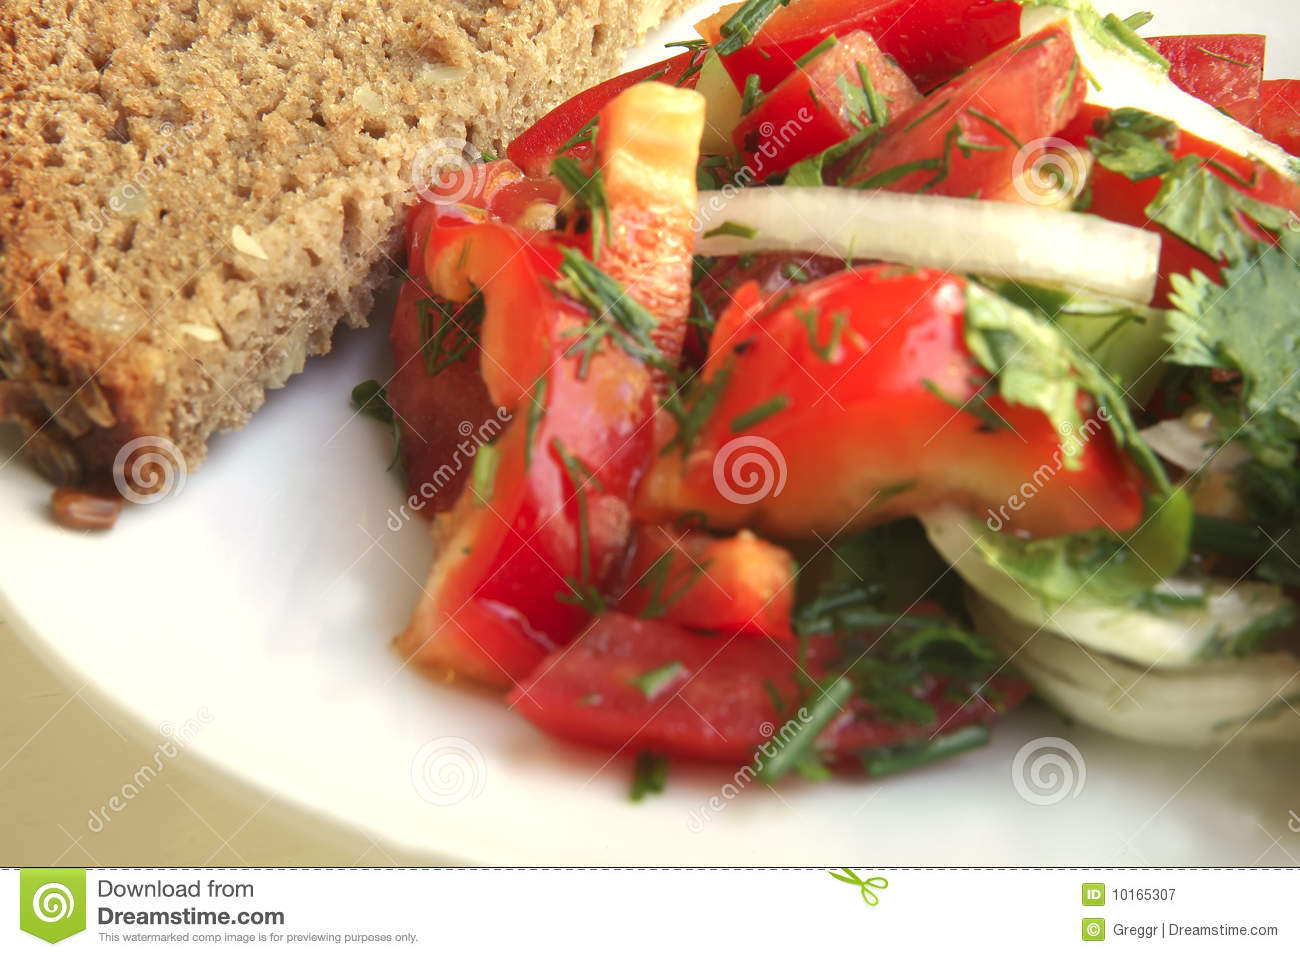 Tomato salad and rye bread